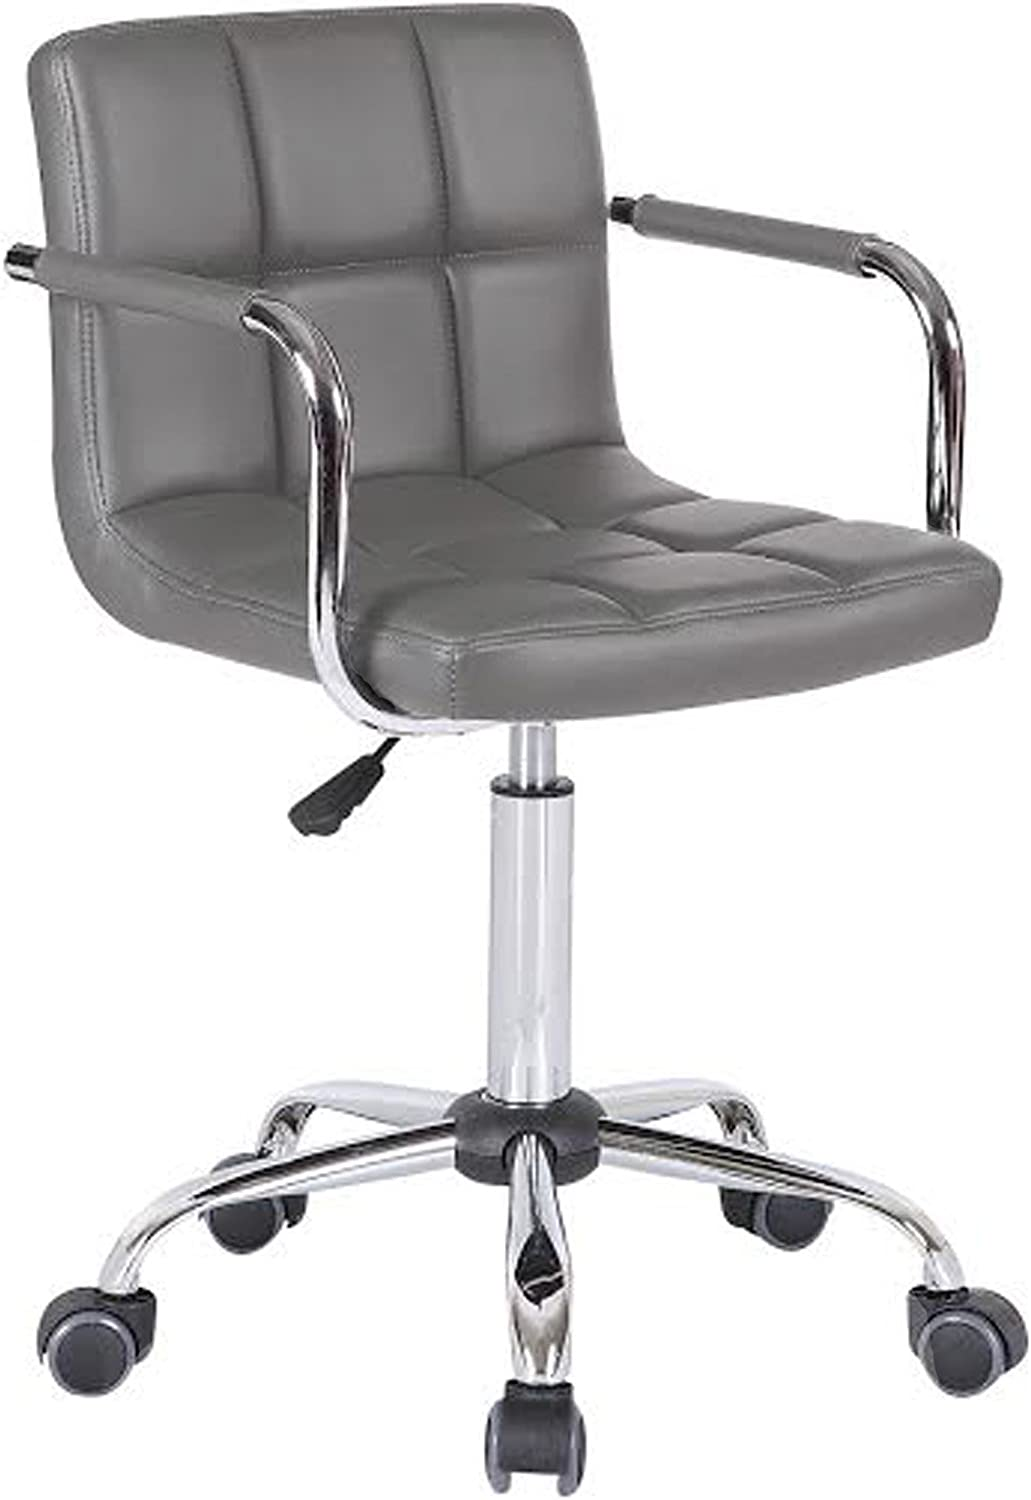 Decor It 2016 V2 Executive Home Office Chair With Wheels Grey Amazon Co Uk Kitchen Home